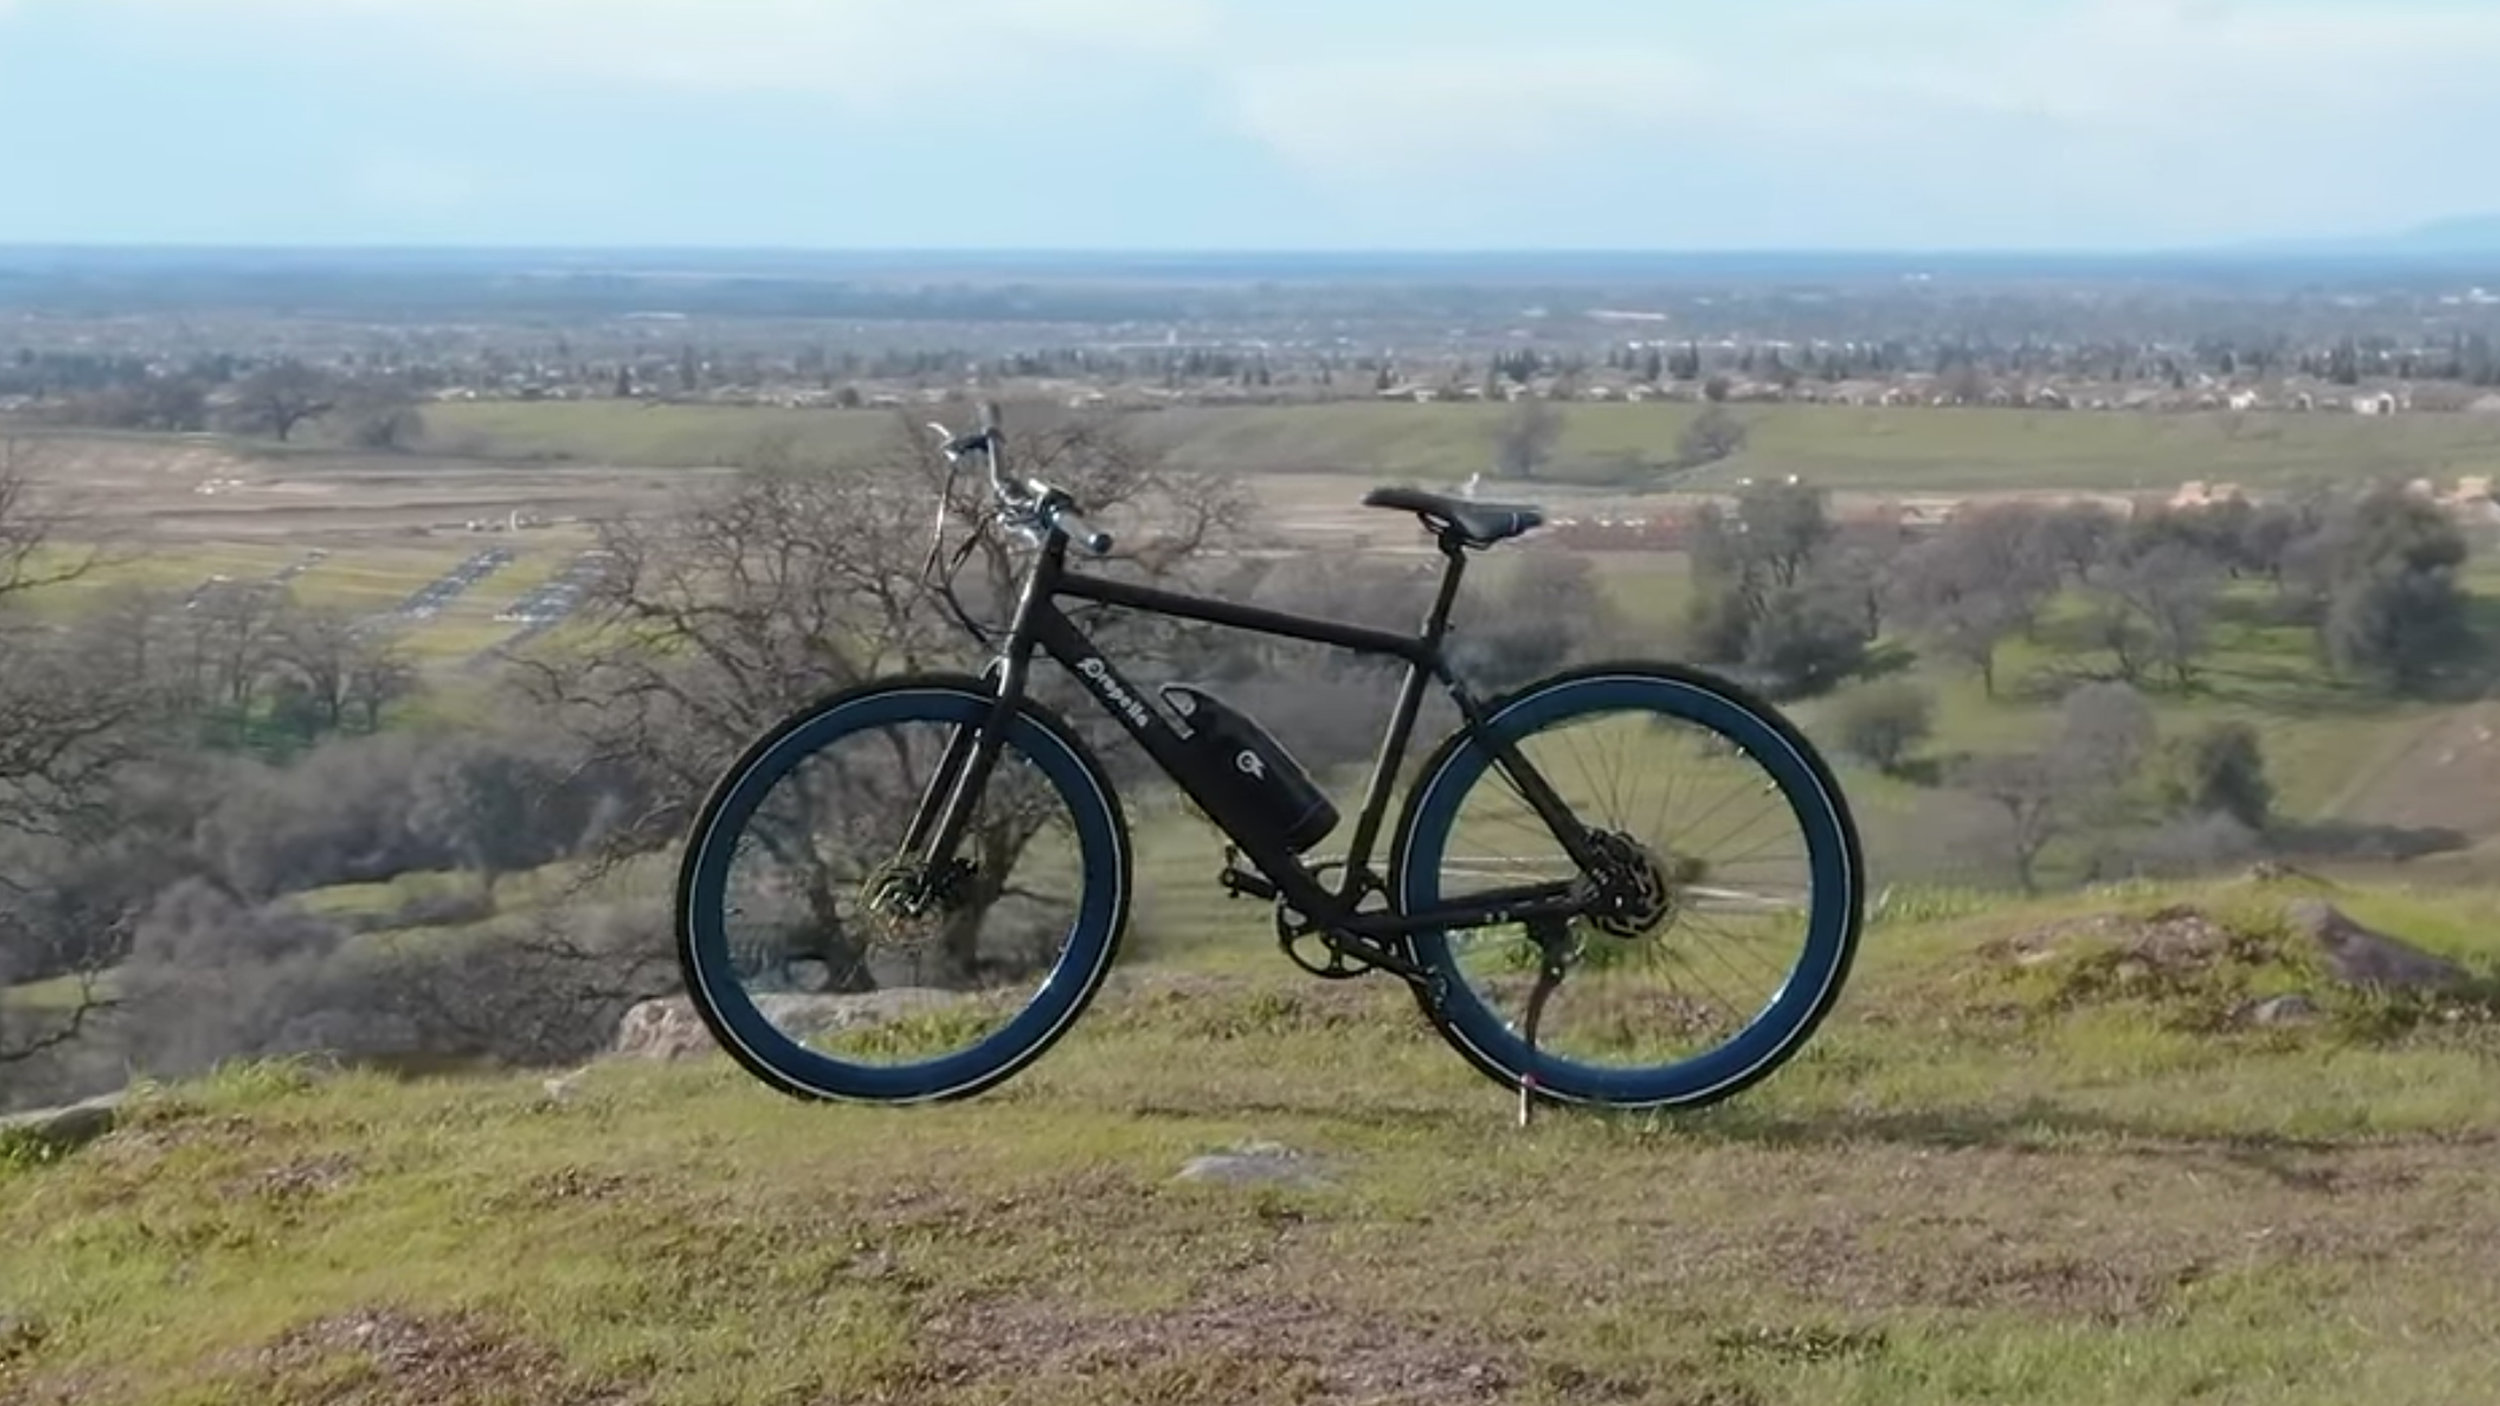 electrified-reviews-propella-2-single-speed-electric-bike-review-profile.jpg